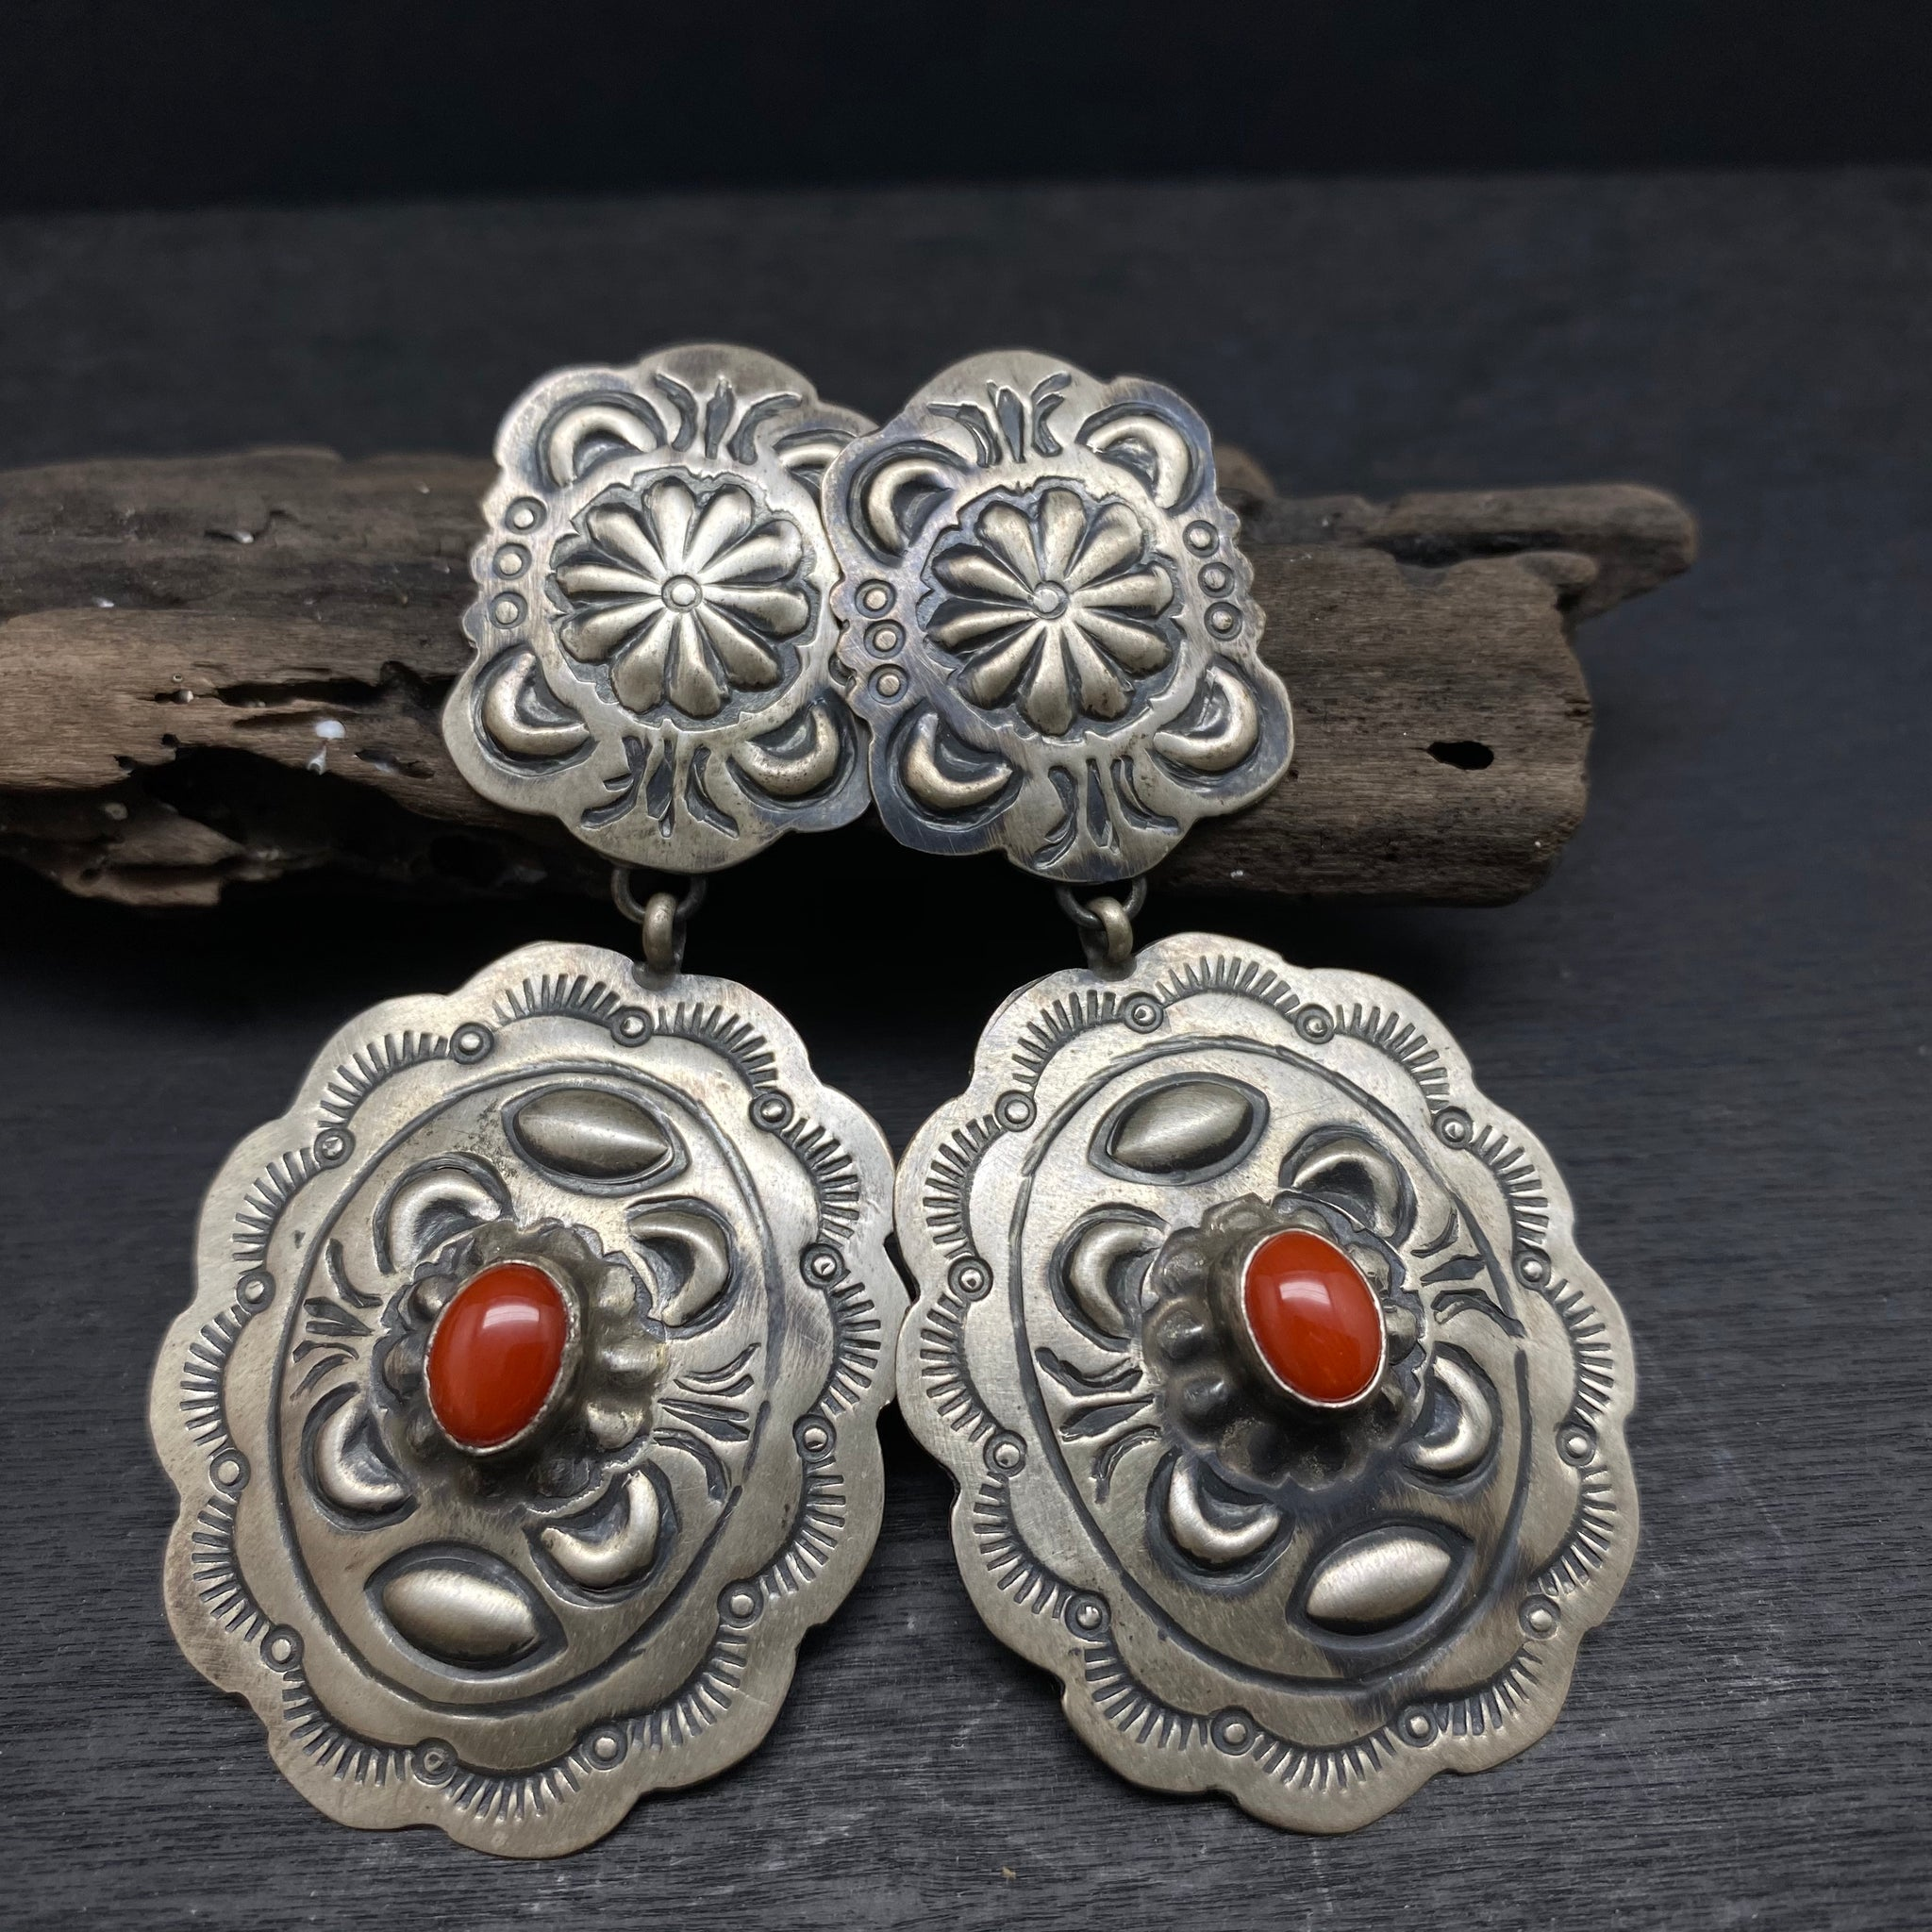 sterling silver oxidized red coral stud earrings by navajo native american artist Marcella James